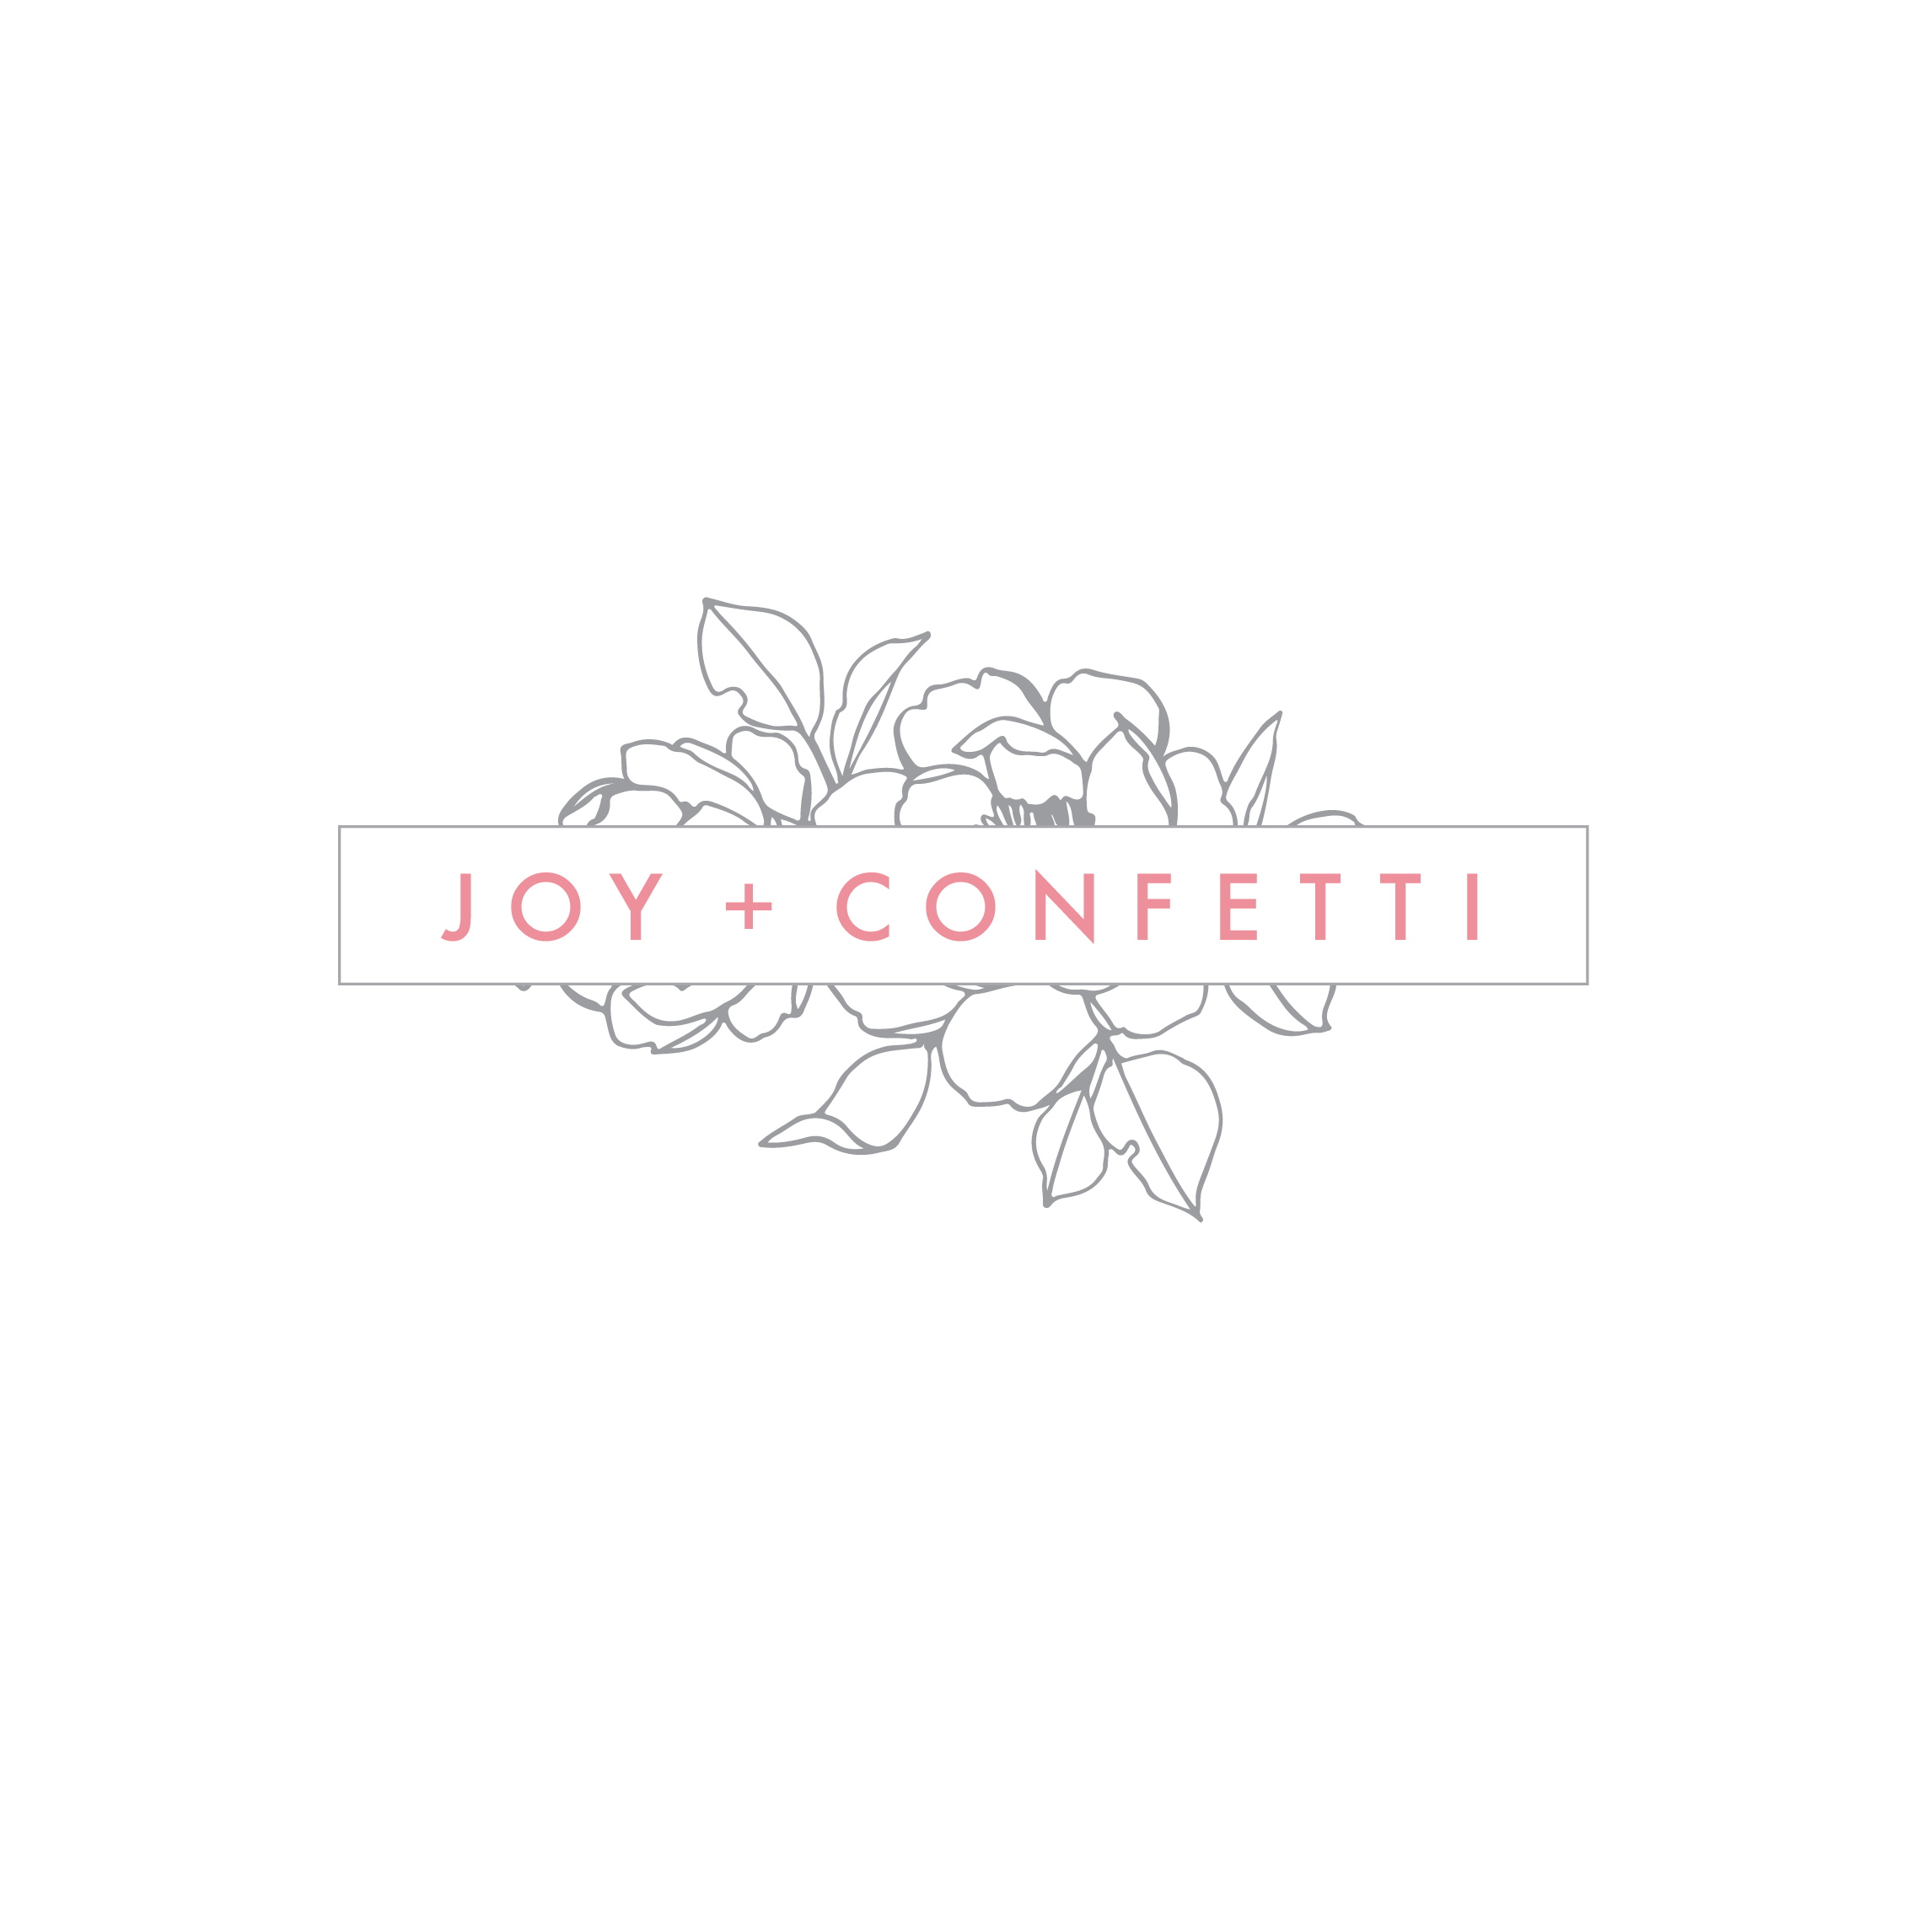 joy+confetti-white-05.png